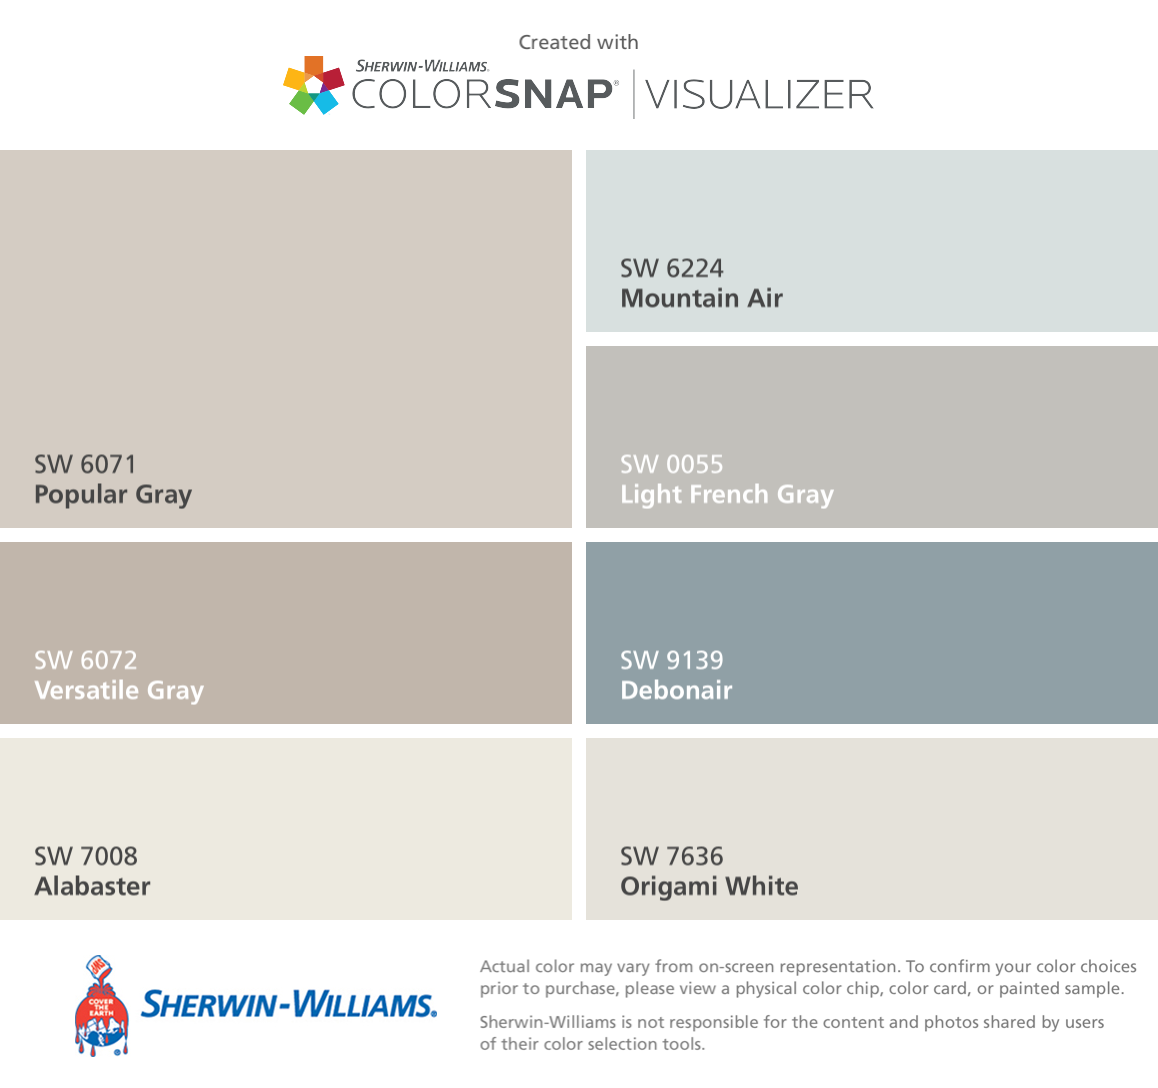 I Found These Colors With Colorsnap Visualizer For Iphone By Sherwin Williams Popular Gray Sw 6071 Versa Paint Colors For Home Agreeable Gray Paint Colors